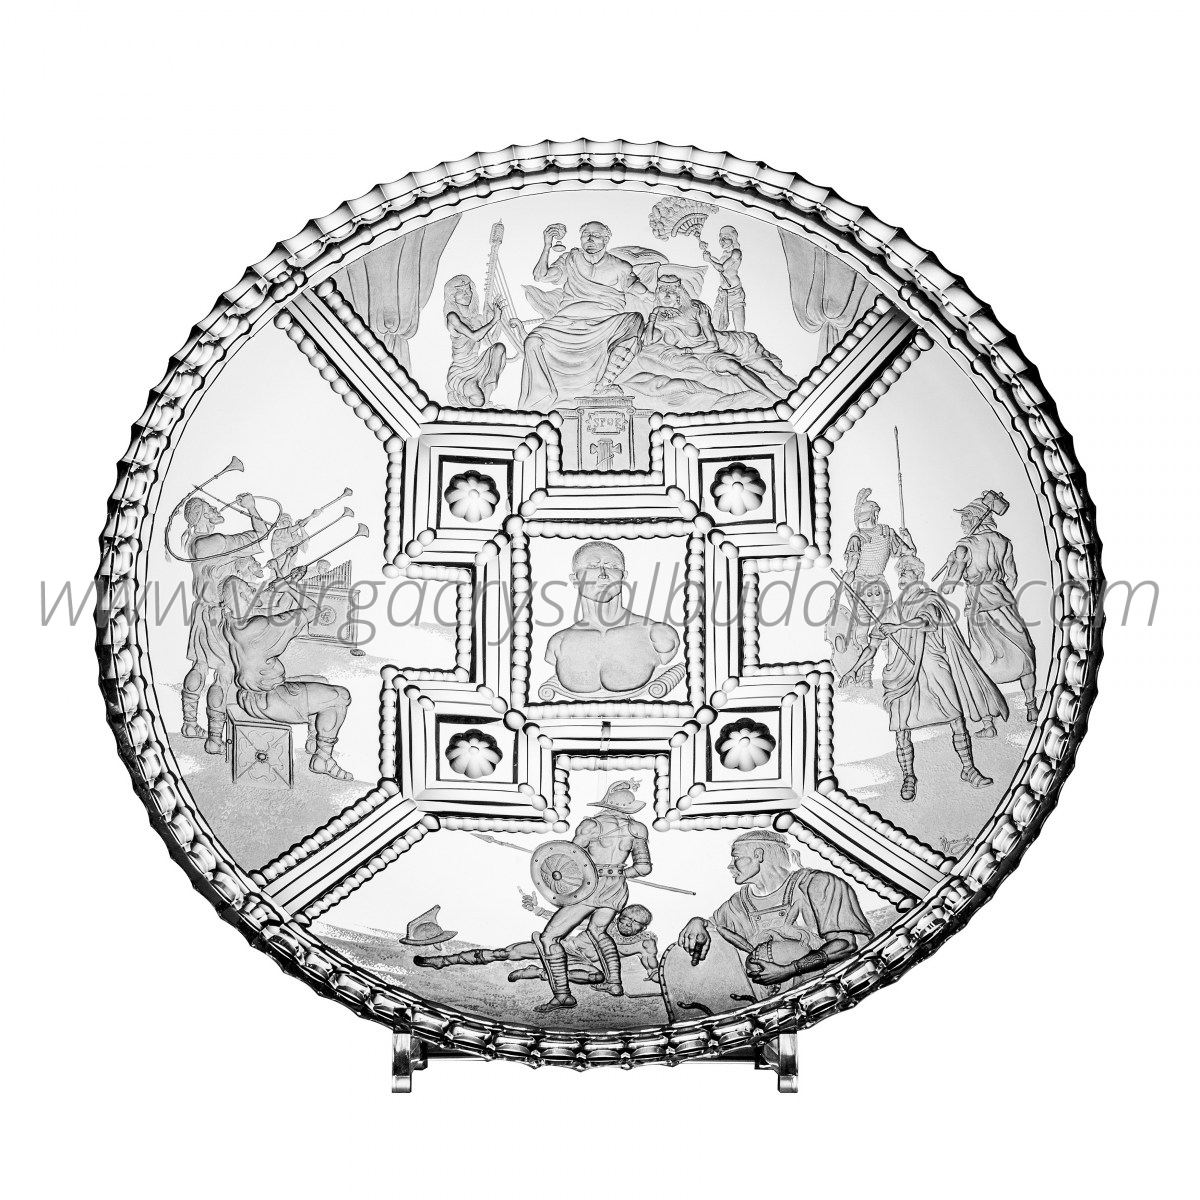 One of a Kind Caesar plate - $ 17143 / € 15000